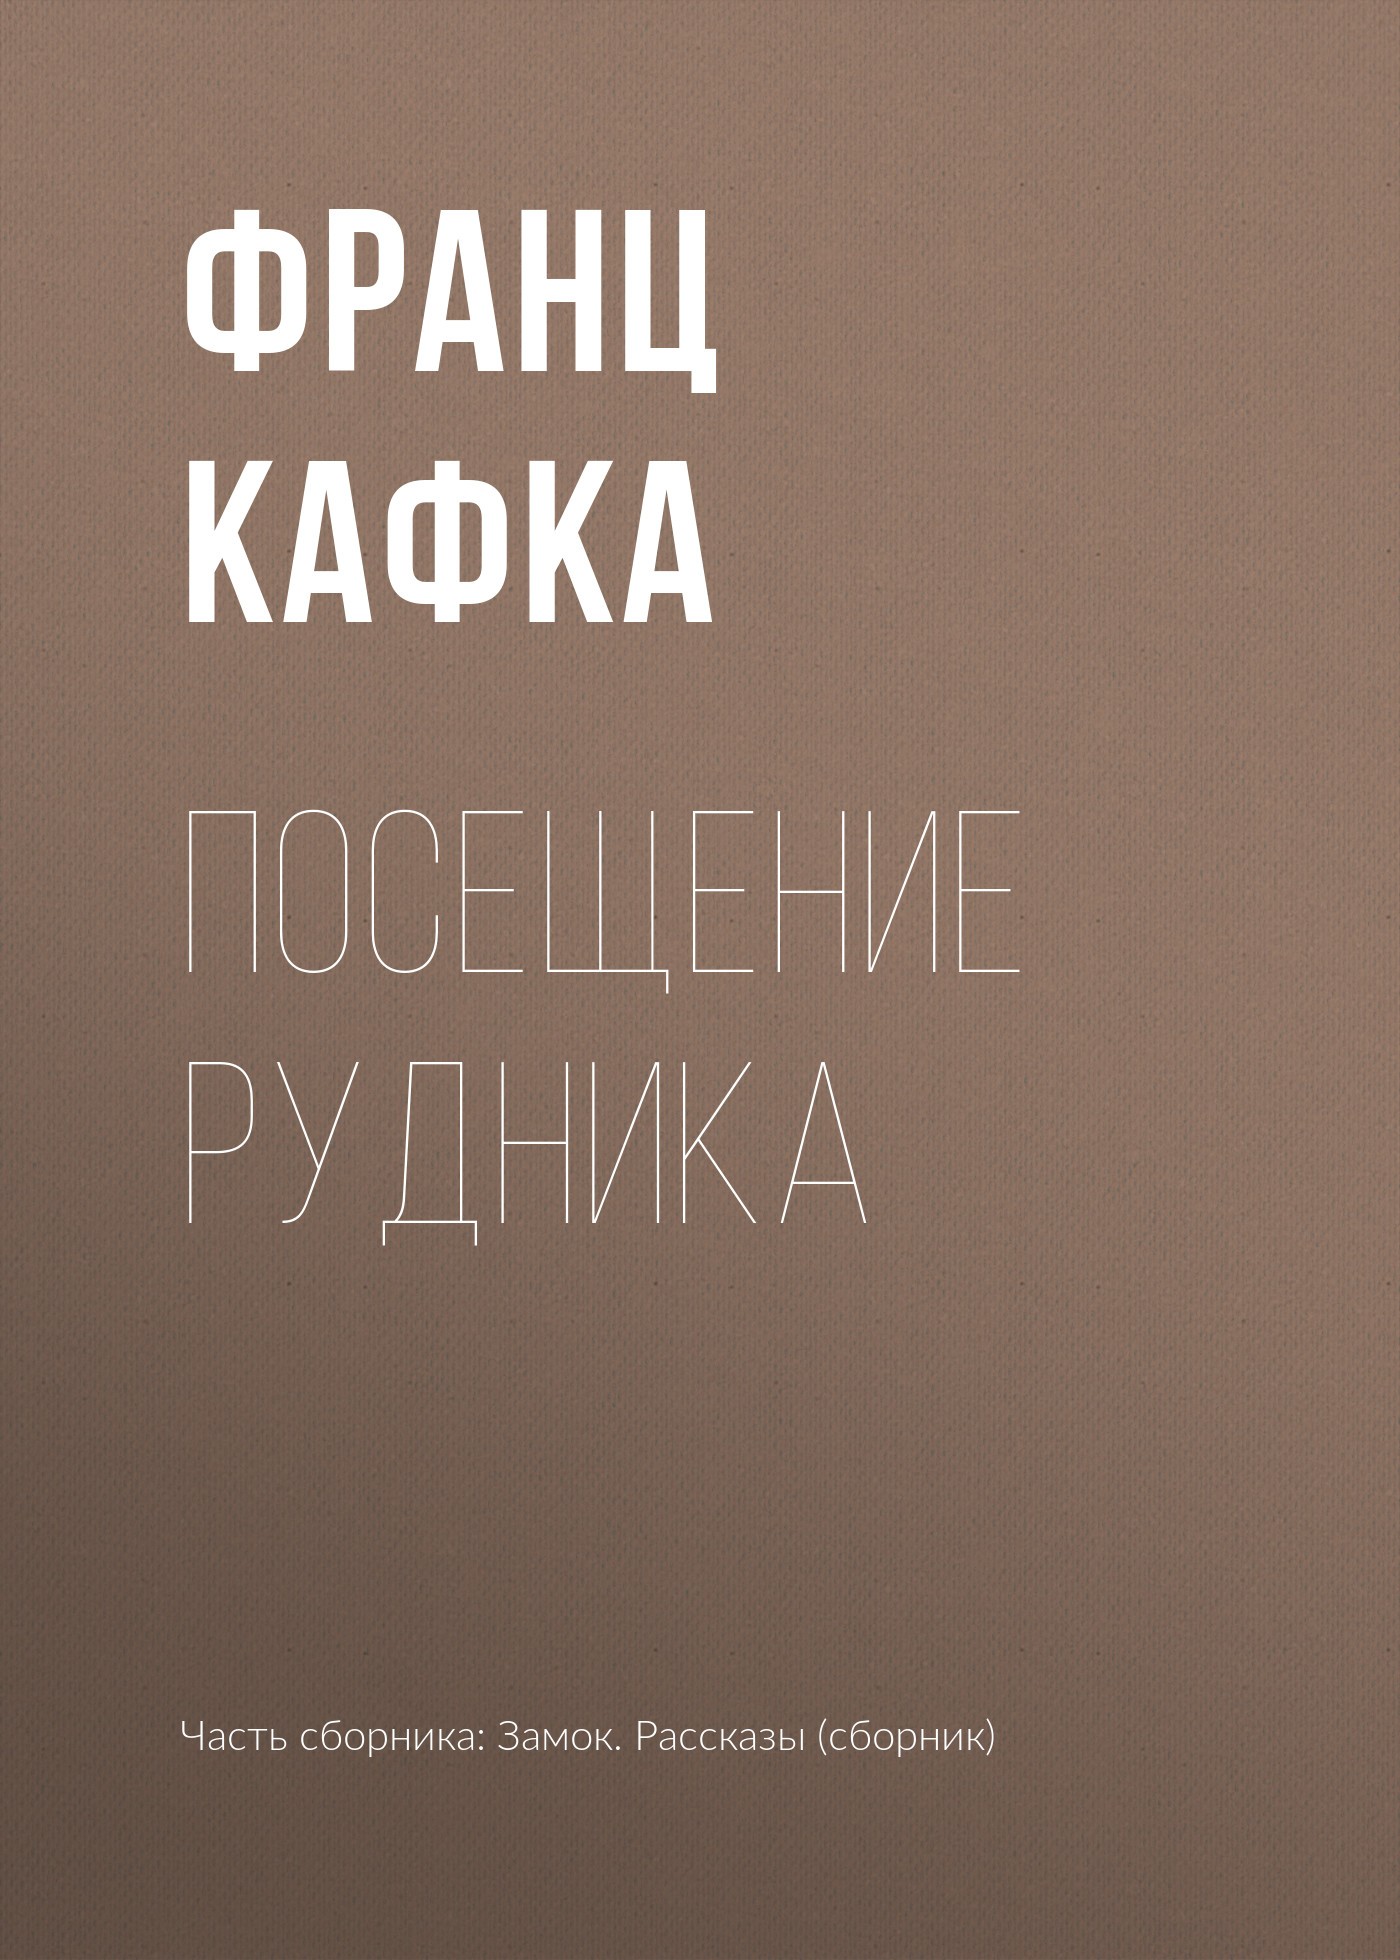 Франц Кафка Посещение рудника kipling r kipling the man who would be king & other stories